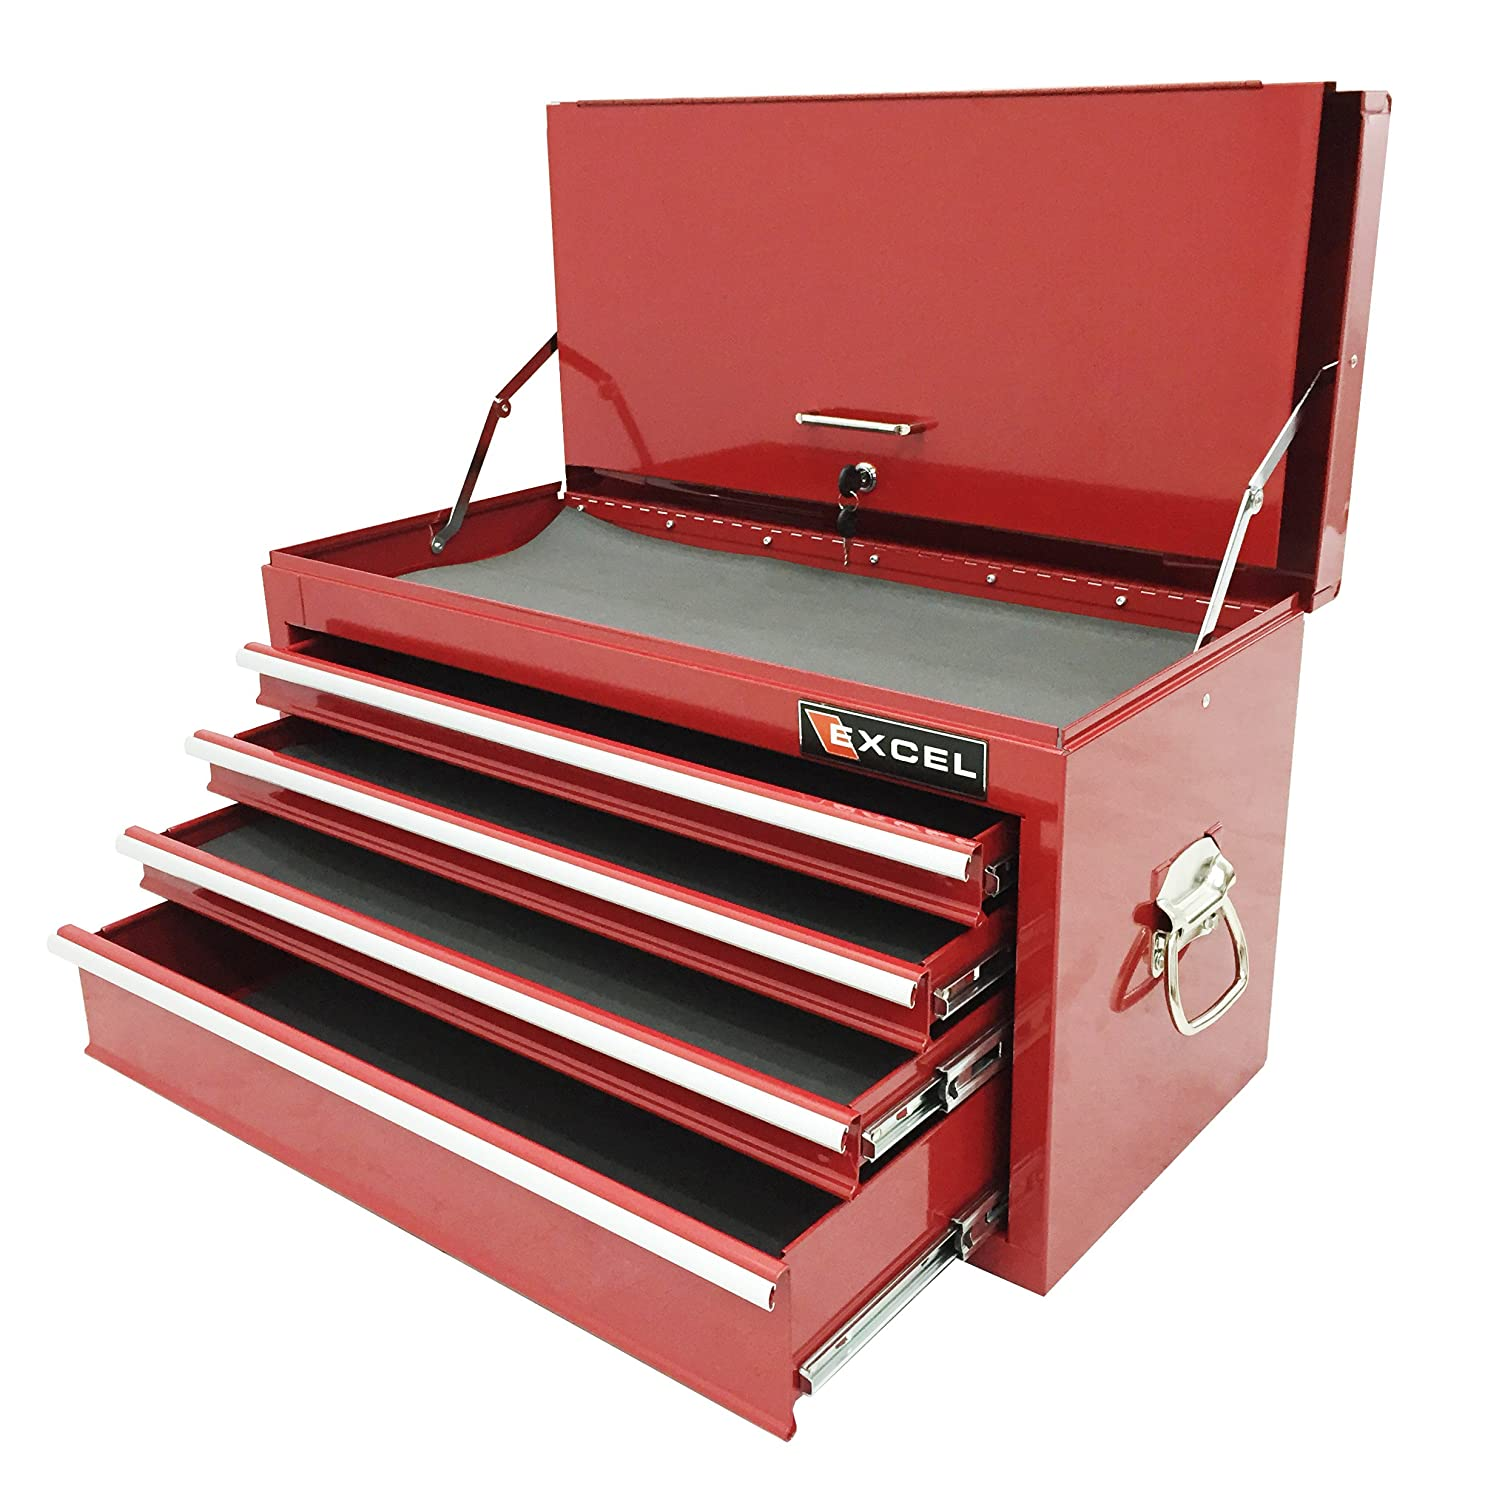 northern equipment horizontal box truck jobox shop aluminum product tools tool duty drawers drawer model heavy